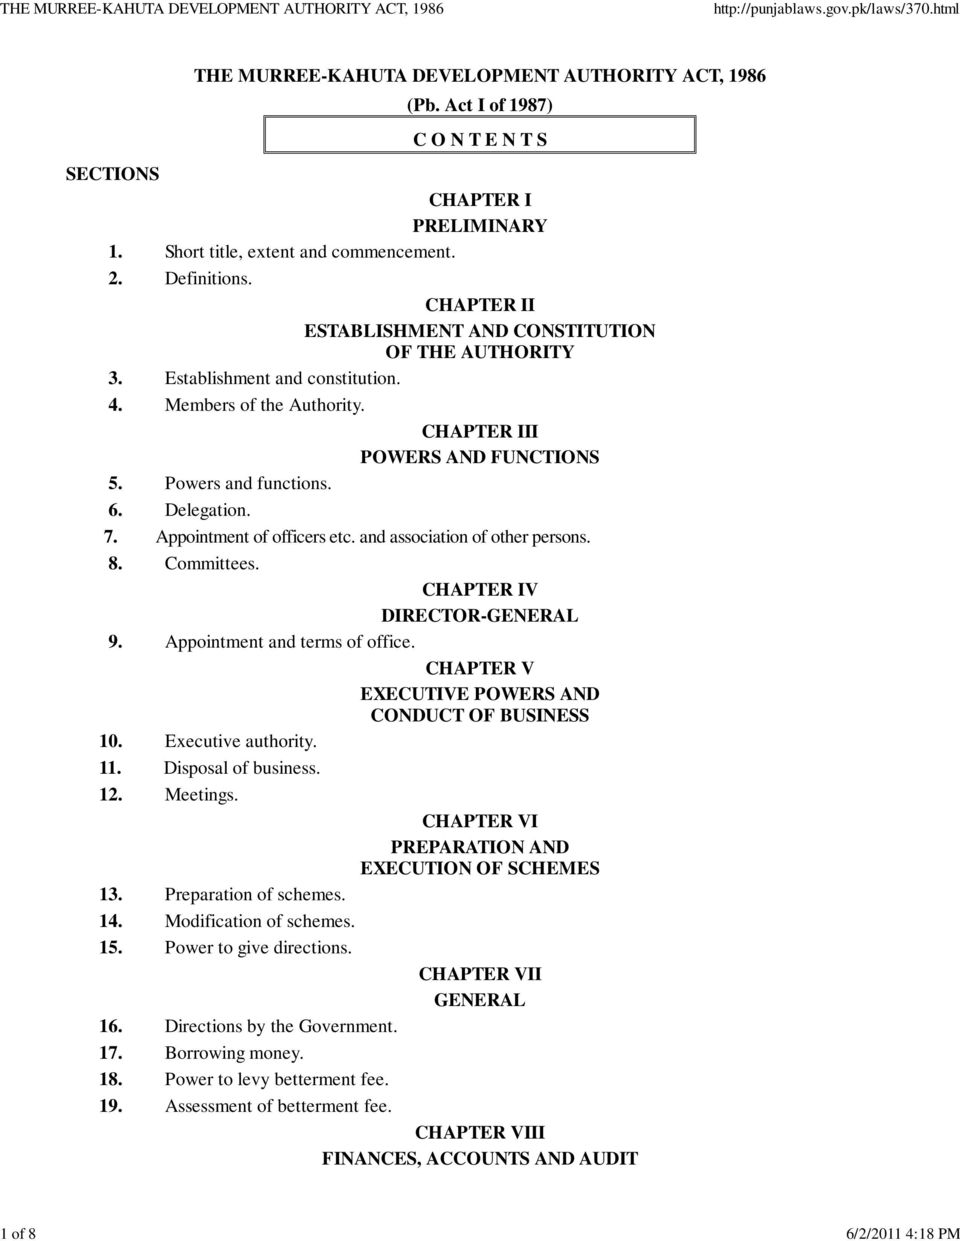 Appointment of officers etc. and association of other persons. 8. Committees. CHAPTER IV DIRECTOR-GENERAL 9. Appointment and terms of office. CHAPTER V EXECUTIVE POWERS AND CONDUCT OF BUSINESS 10.